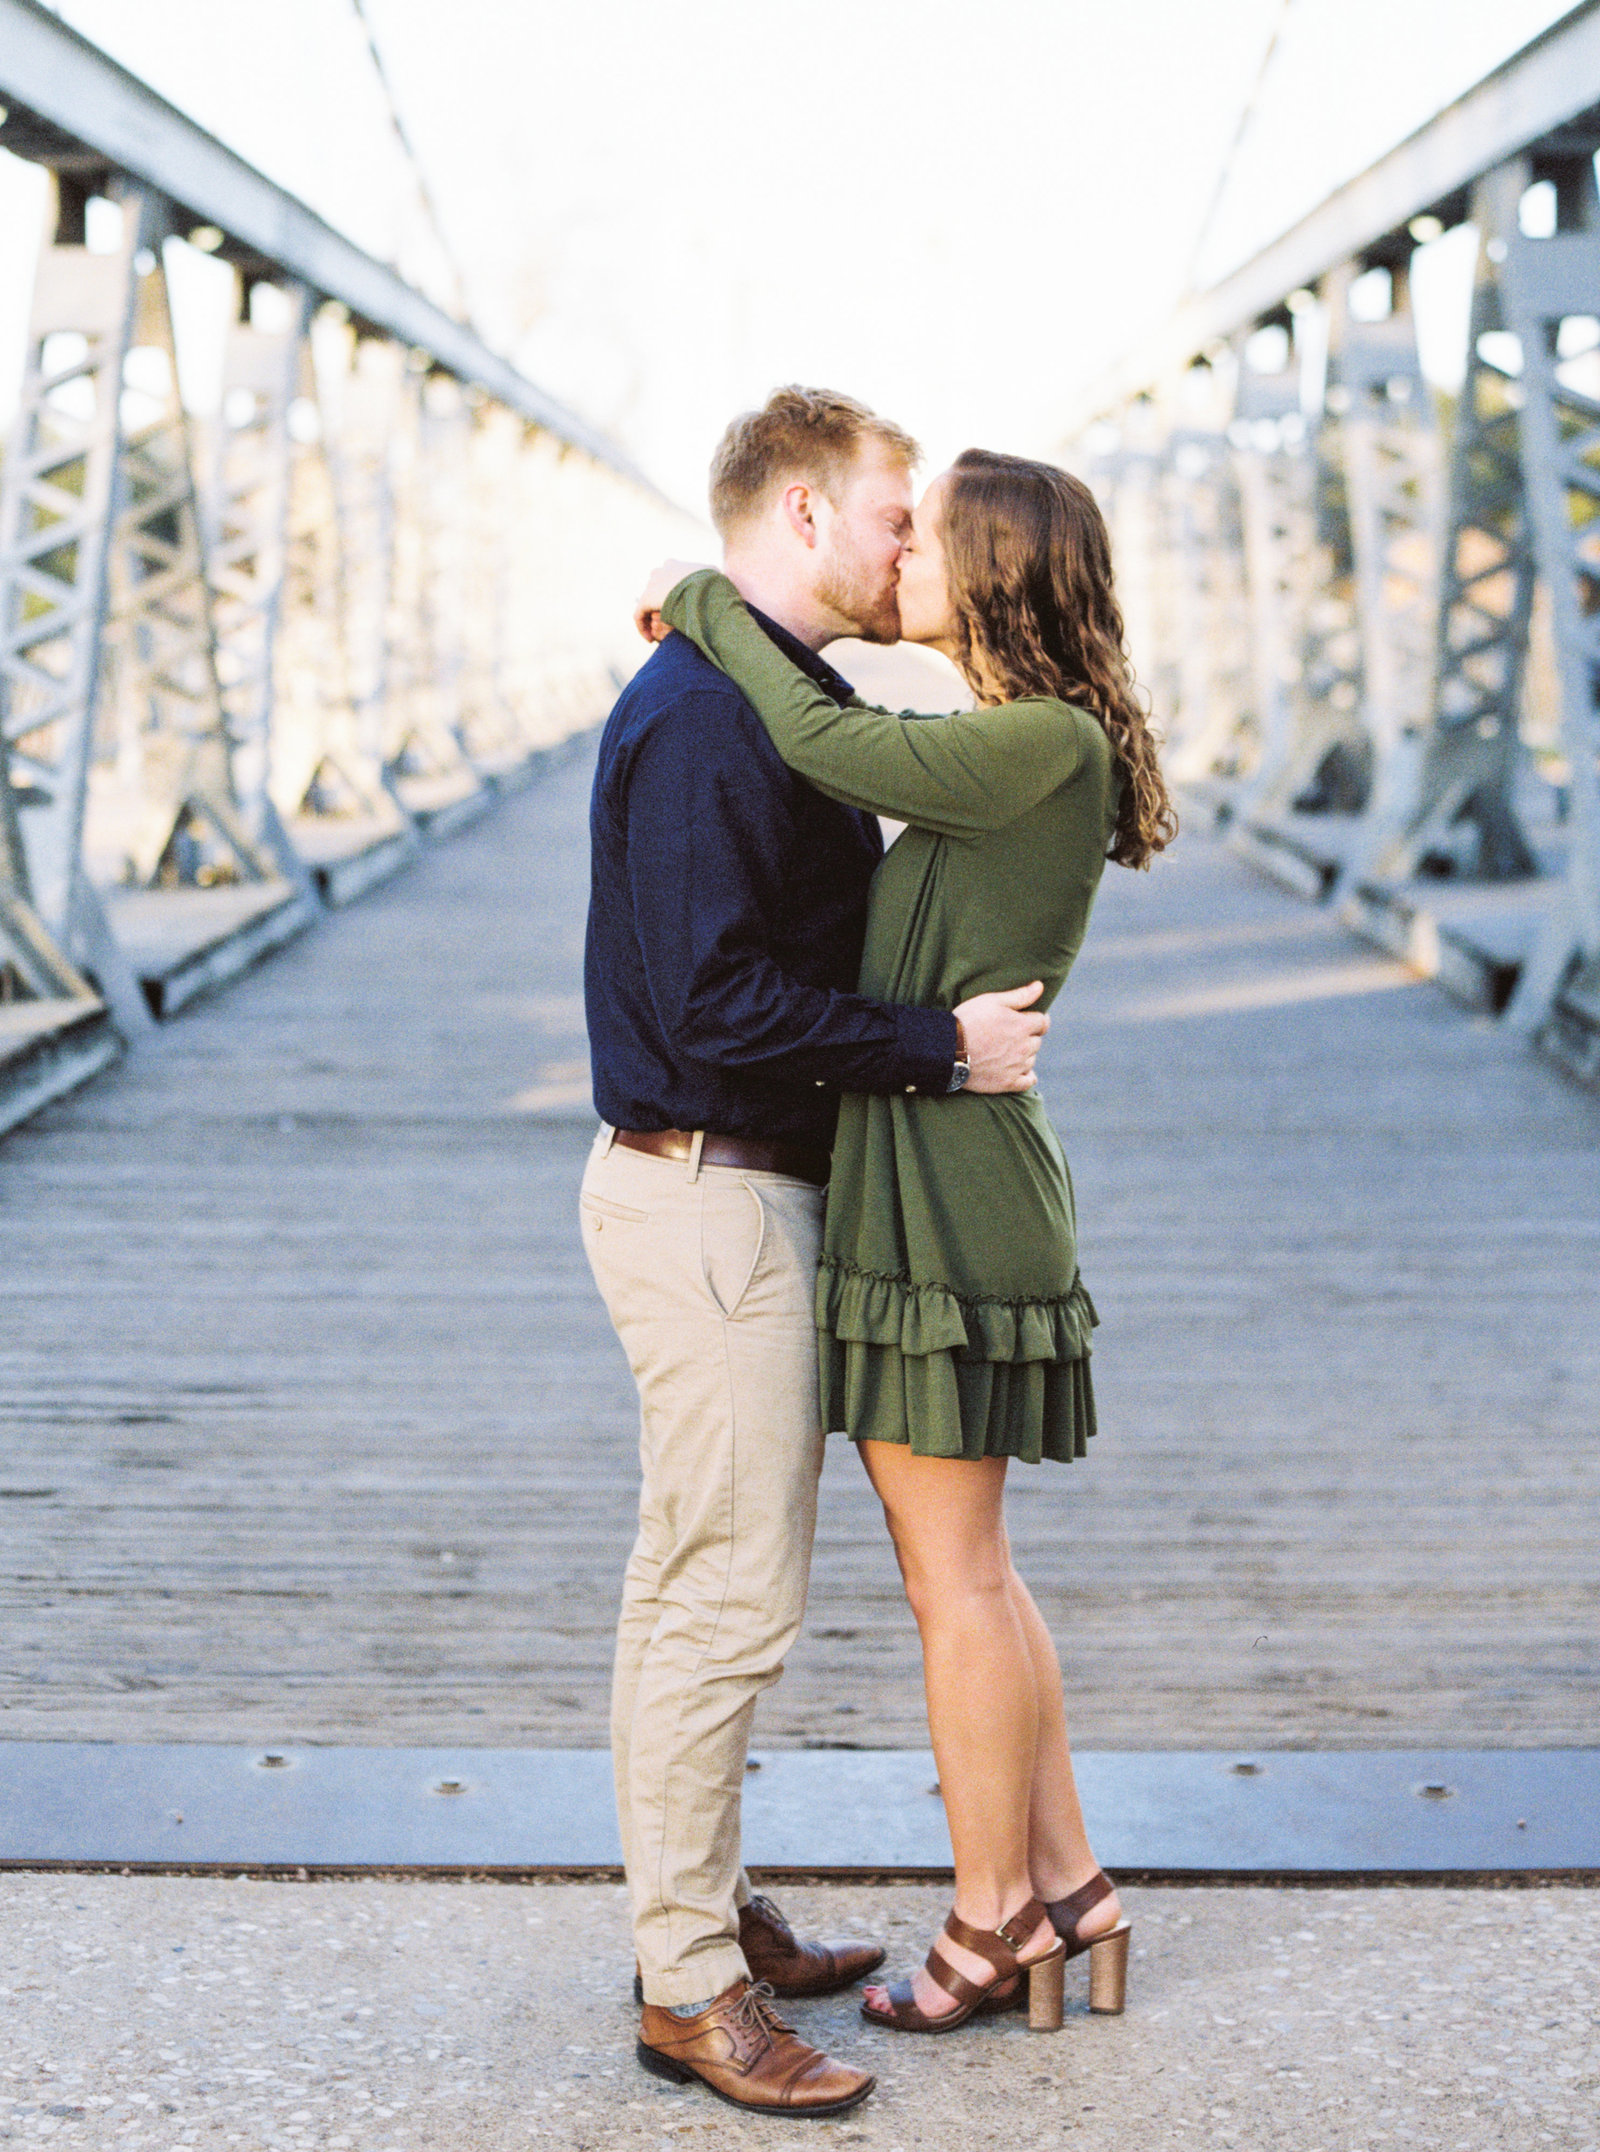 Michael Molly Engagement Photos-FINAL-0049